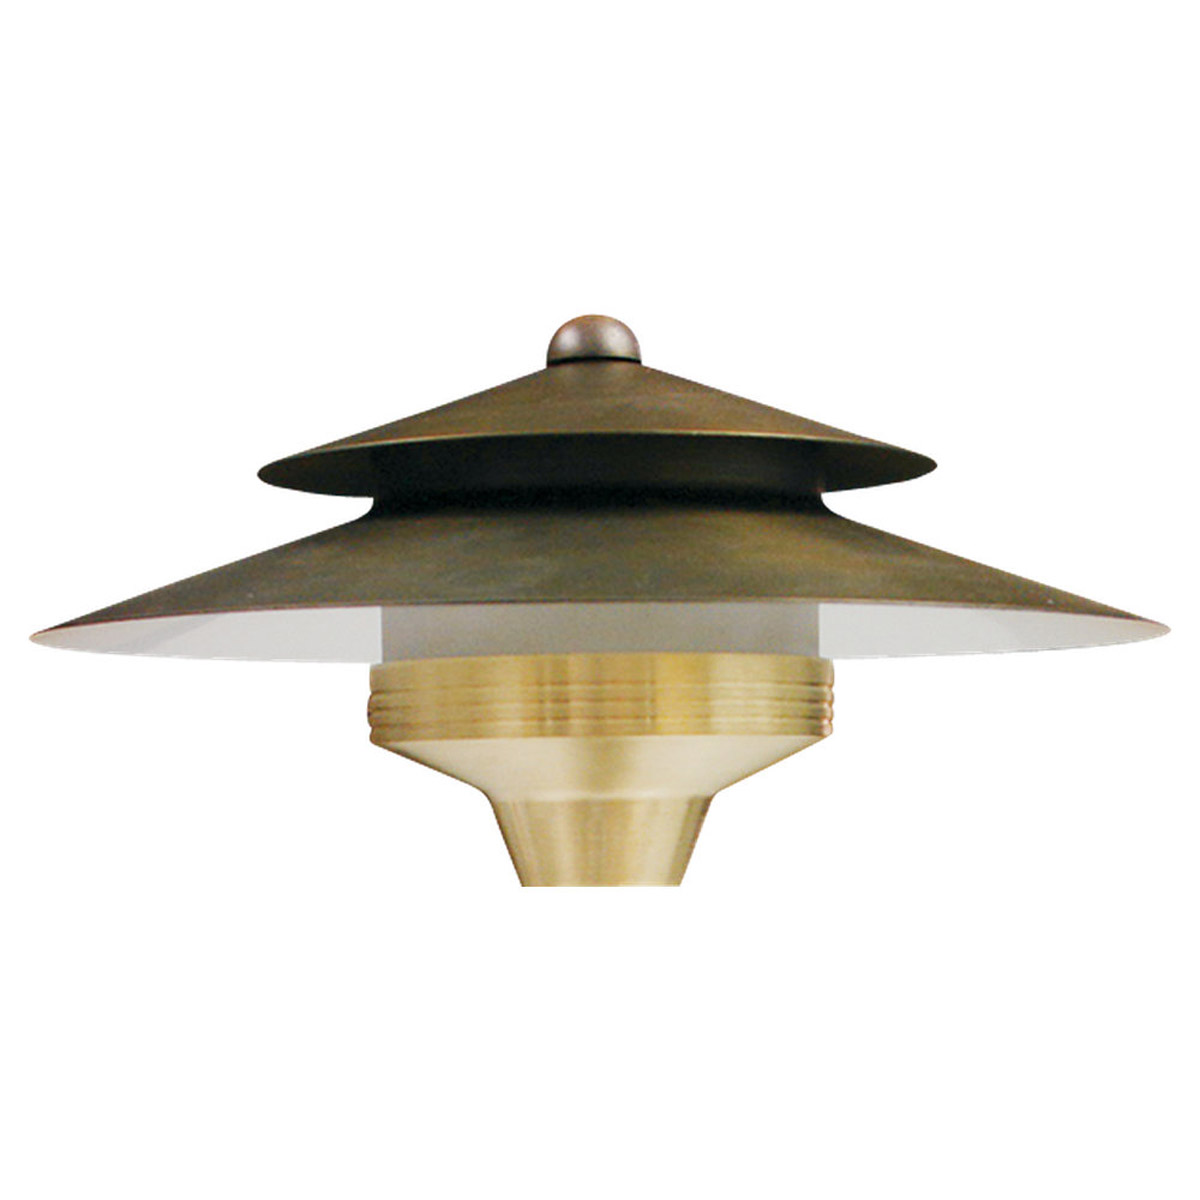 Sea Gull Lighting Signature 1 Light Landscape Path Light in Weathered Brass 91238-147 photo